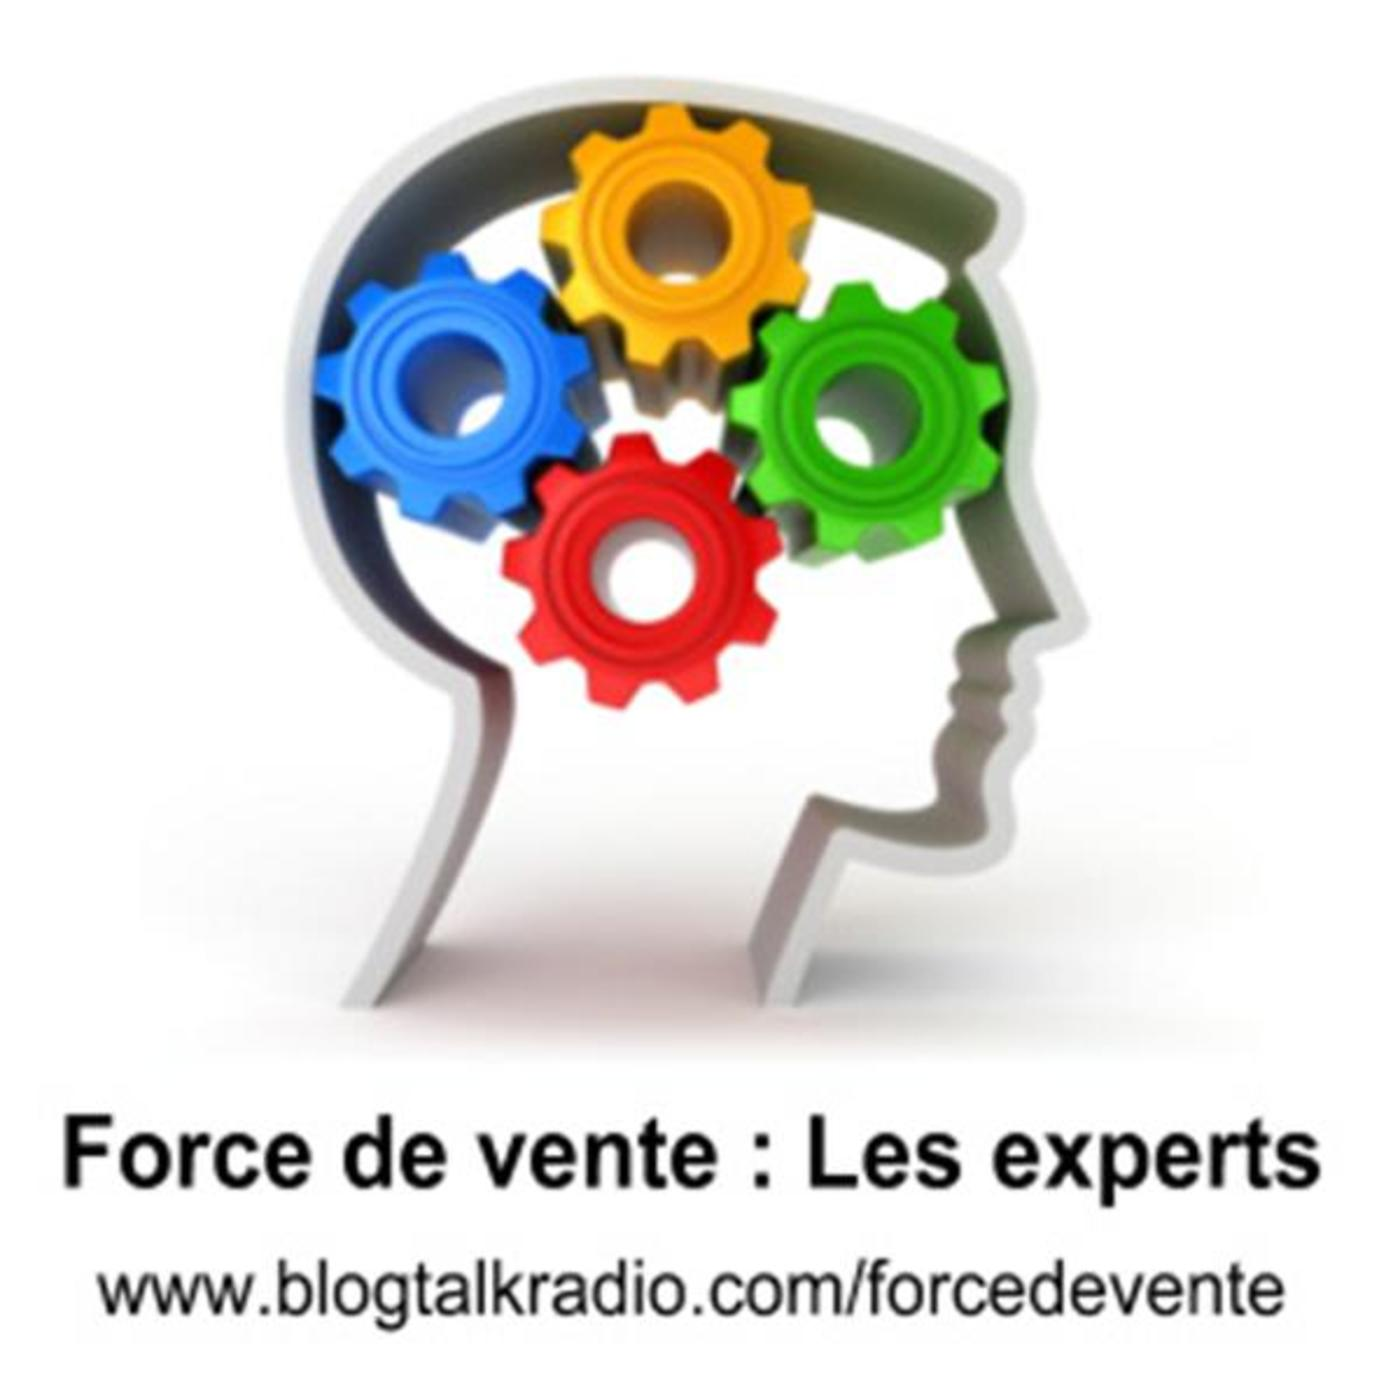 Force de vente : Les experts